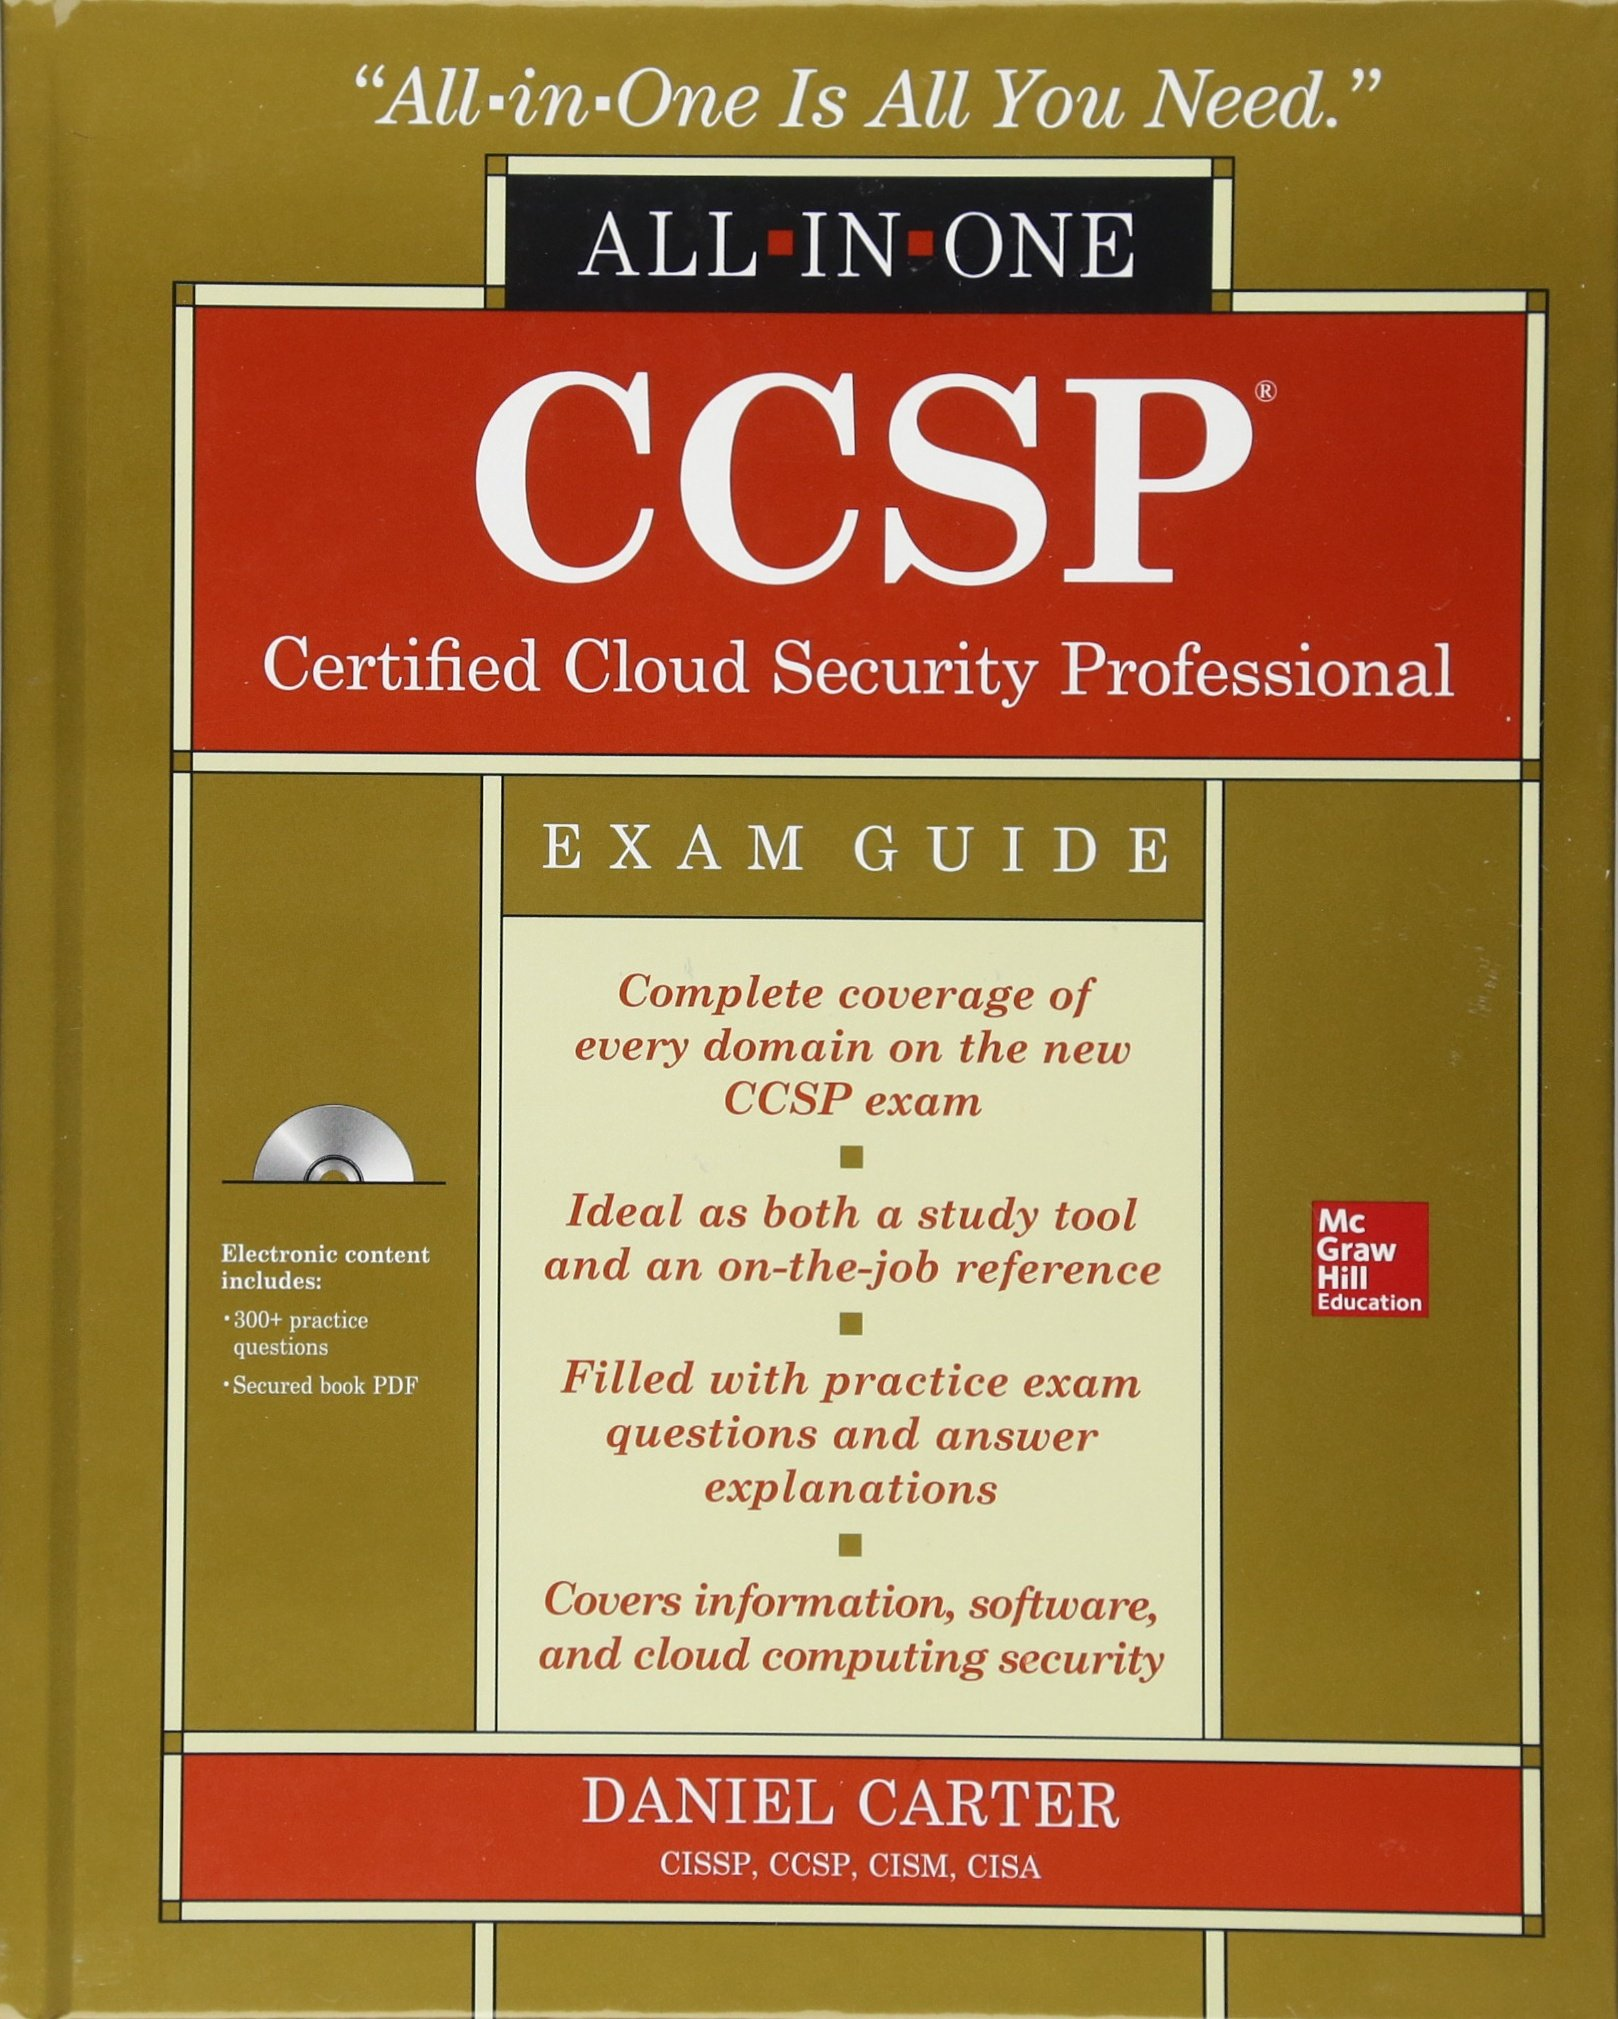 Beautiful pictures of cissp certification cost business cards ccsp certified cloud security professional all in one exam xflitez Gallery